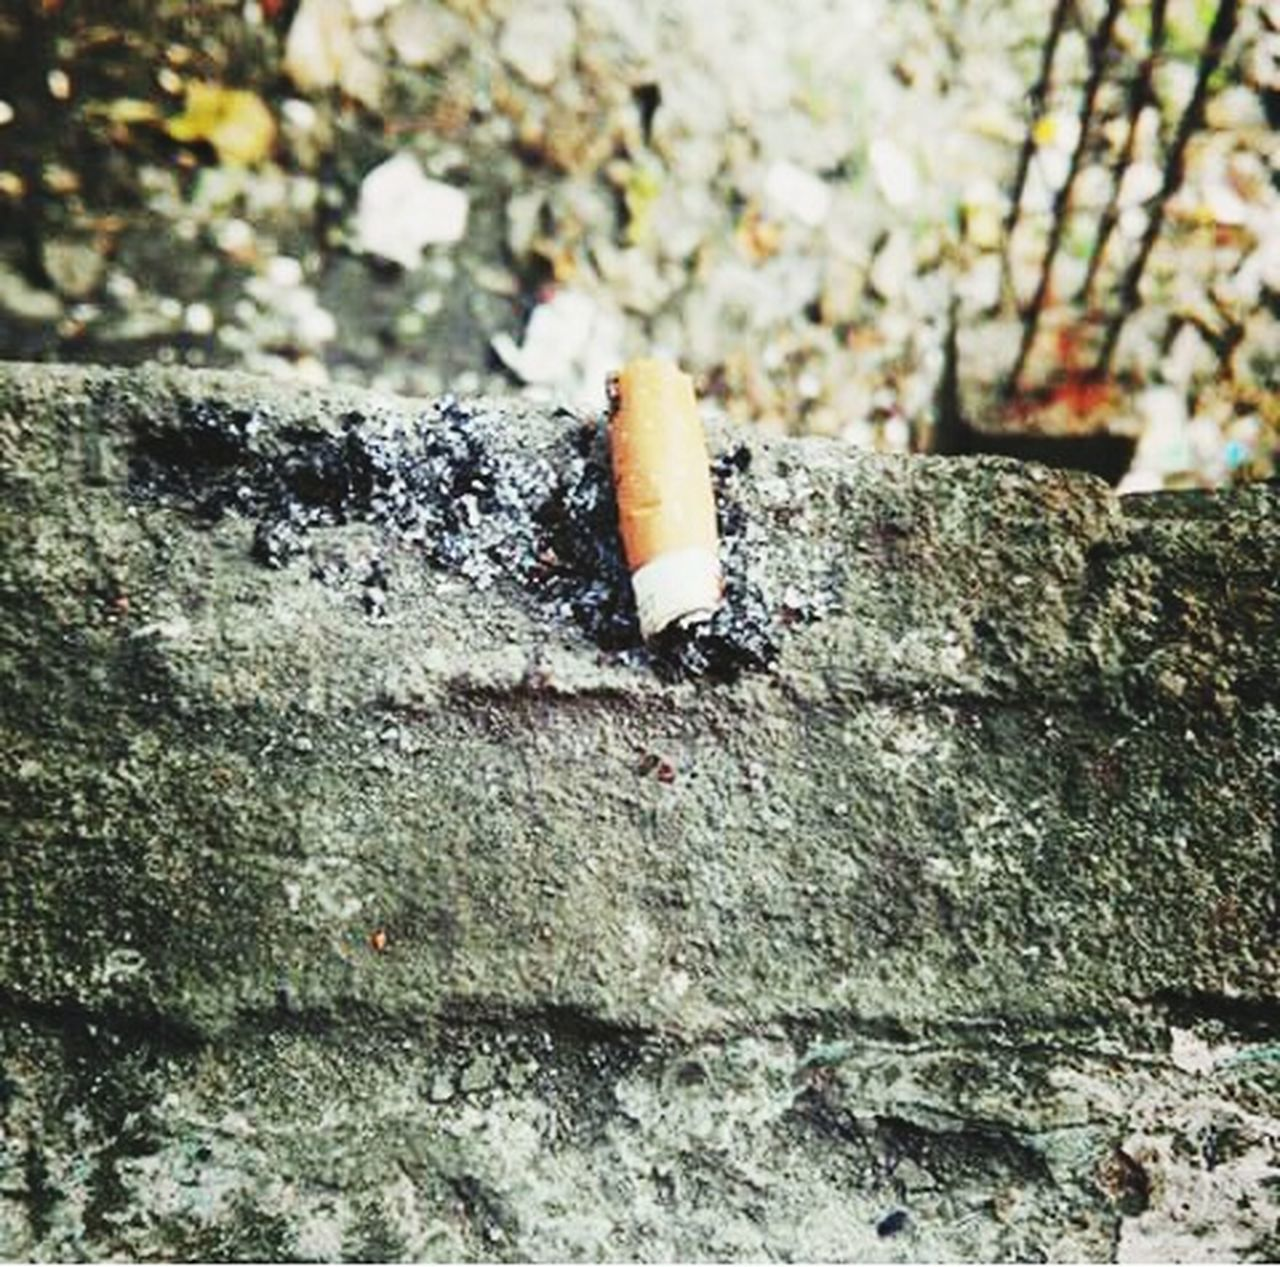 smoking issues, bad habit, cigarette, addiction, cigarette butt, danger, ashtray, ash, social issues, close-up, day, risk, outdoors, no people